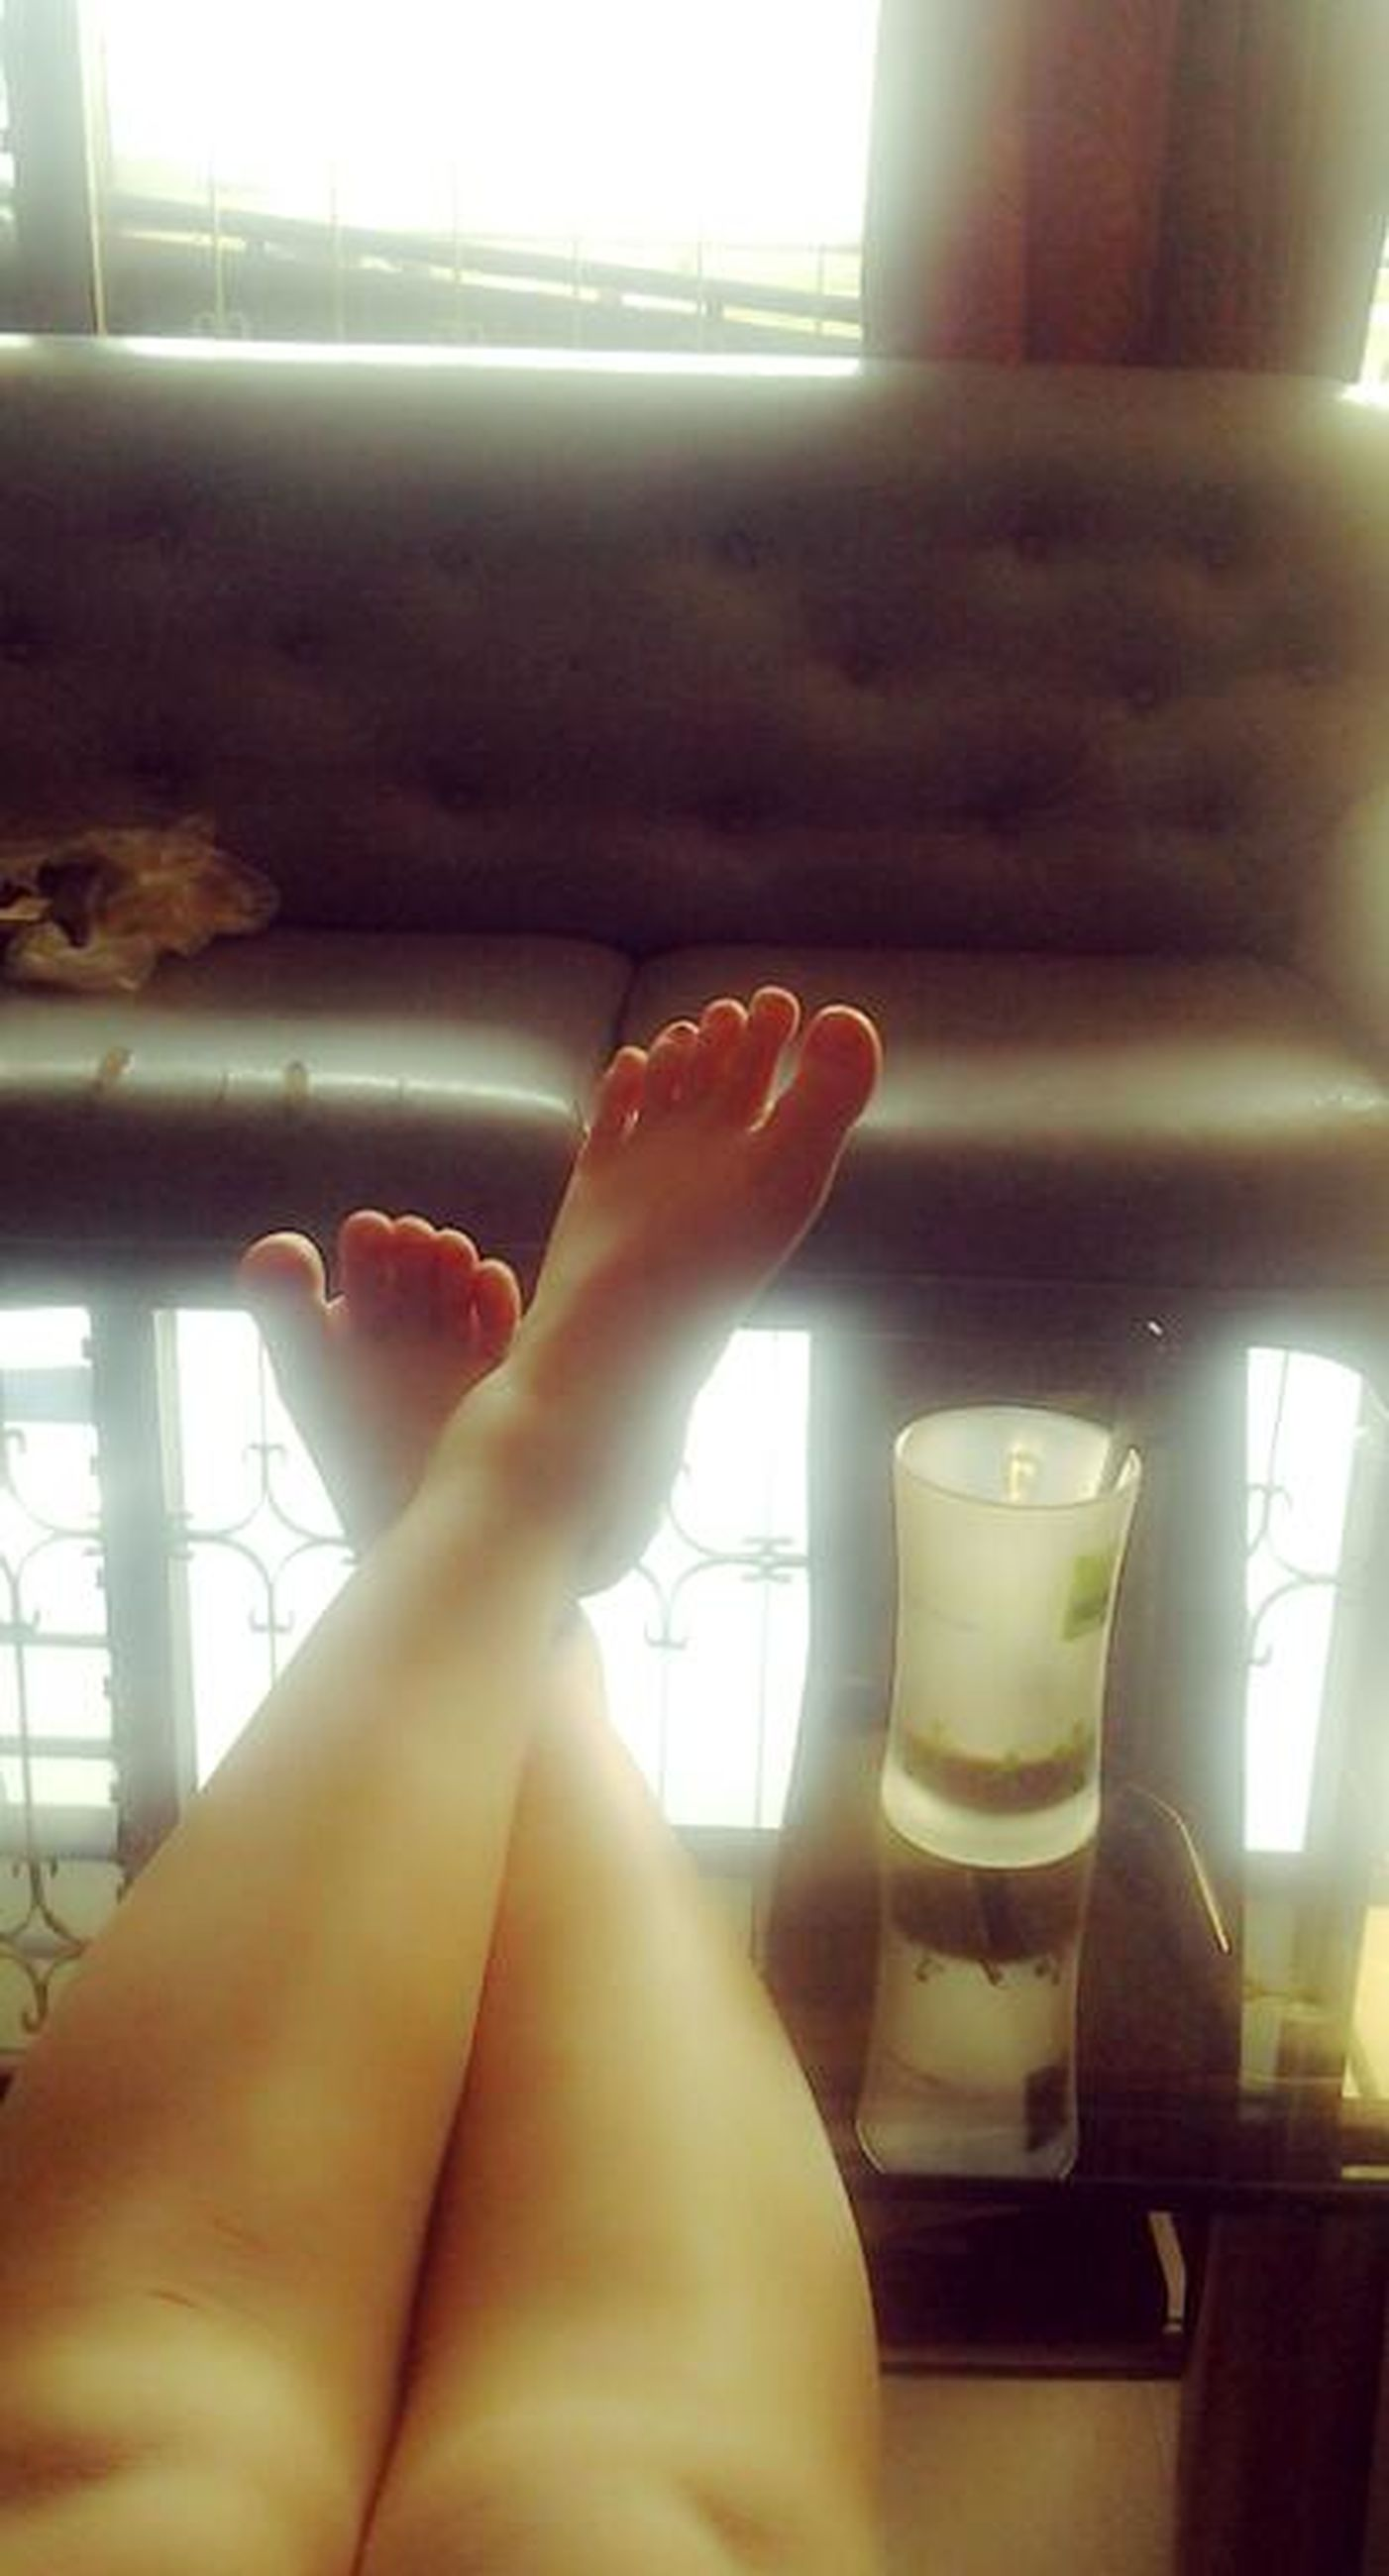 indoors, person, personal perspective, lifestyles, window, part of, home interior, low section, domestic room, human finger, barefoot, relaxation, cropped, sunlight, leisure activity